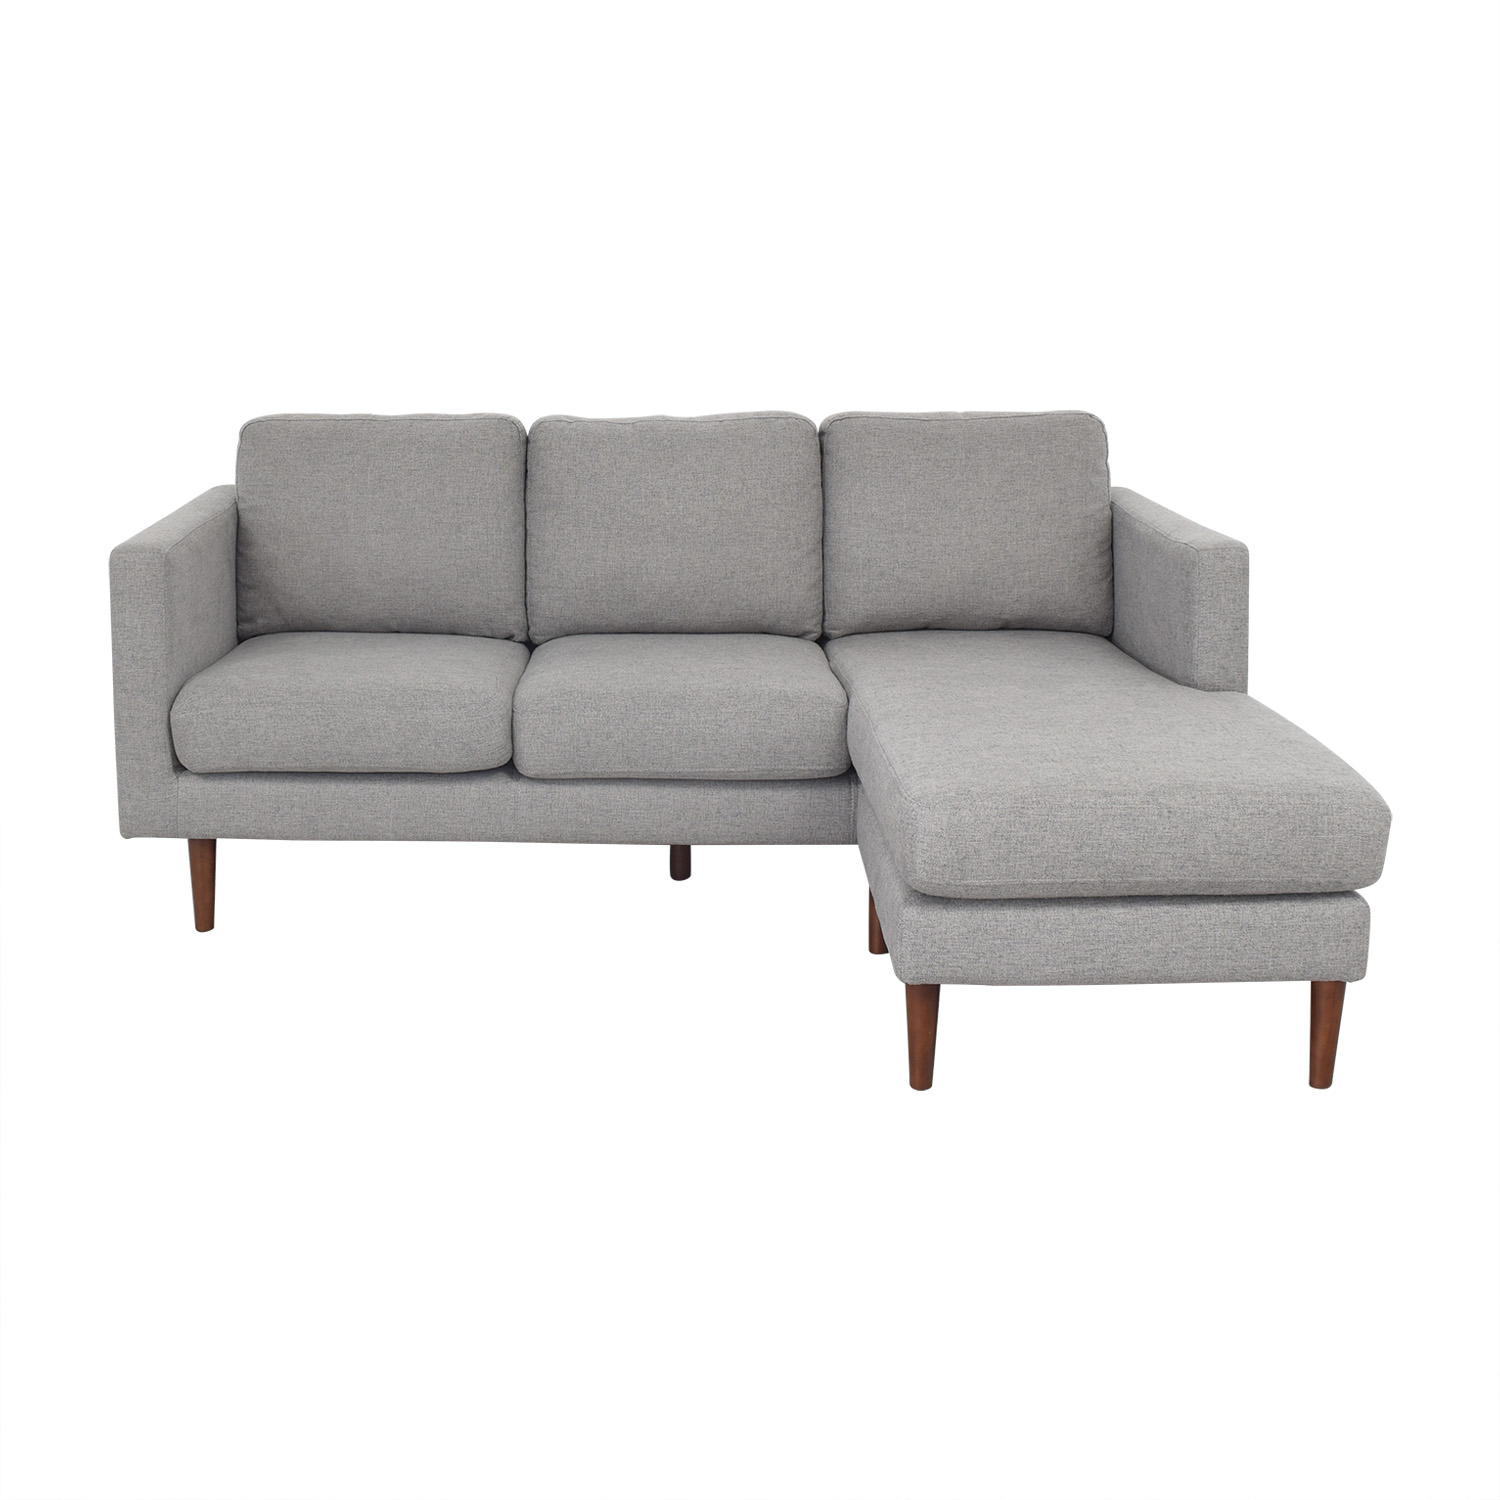 30% OFF - Rivet Rivet Revolve Modern Upholstered Sectional with Chaise  Lounge / Sofas